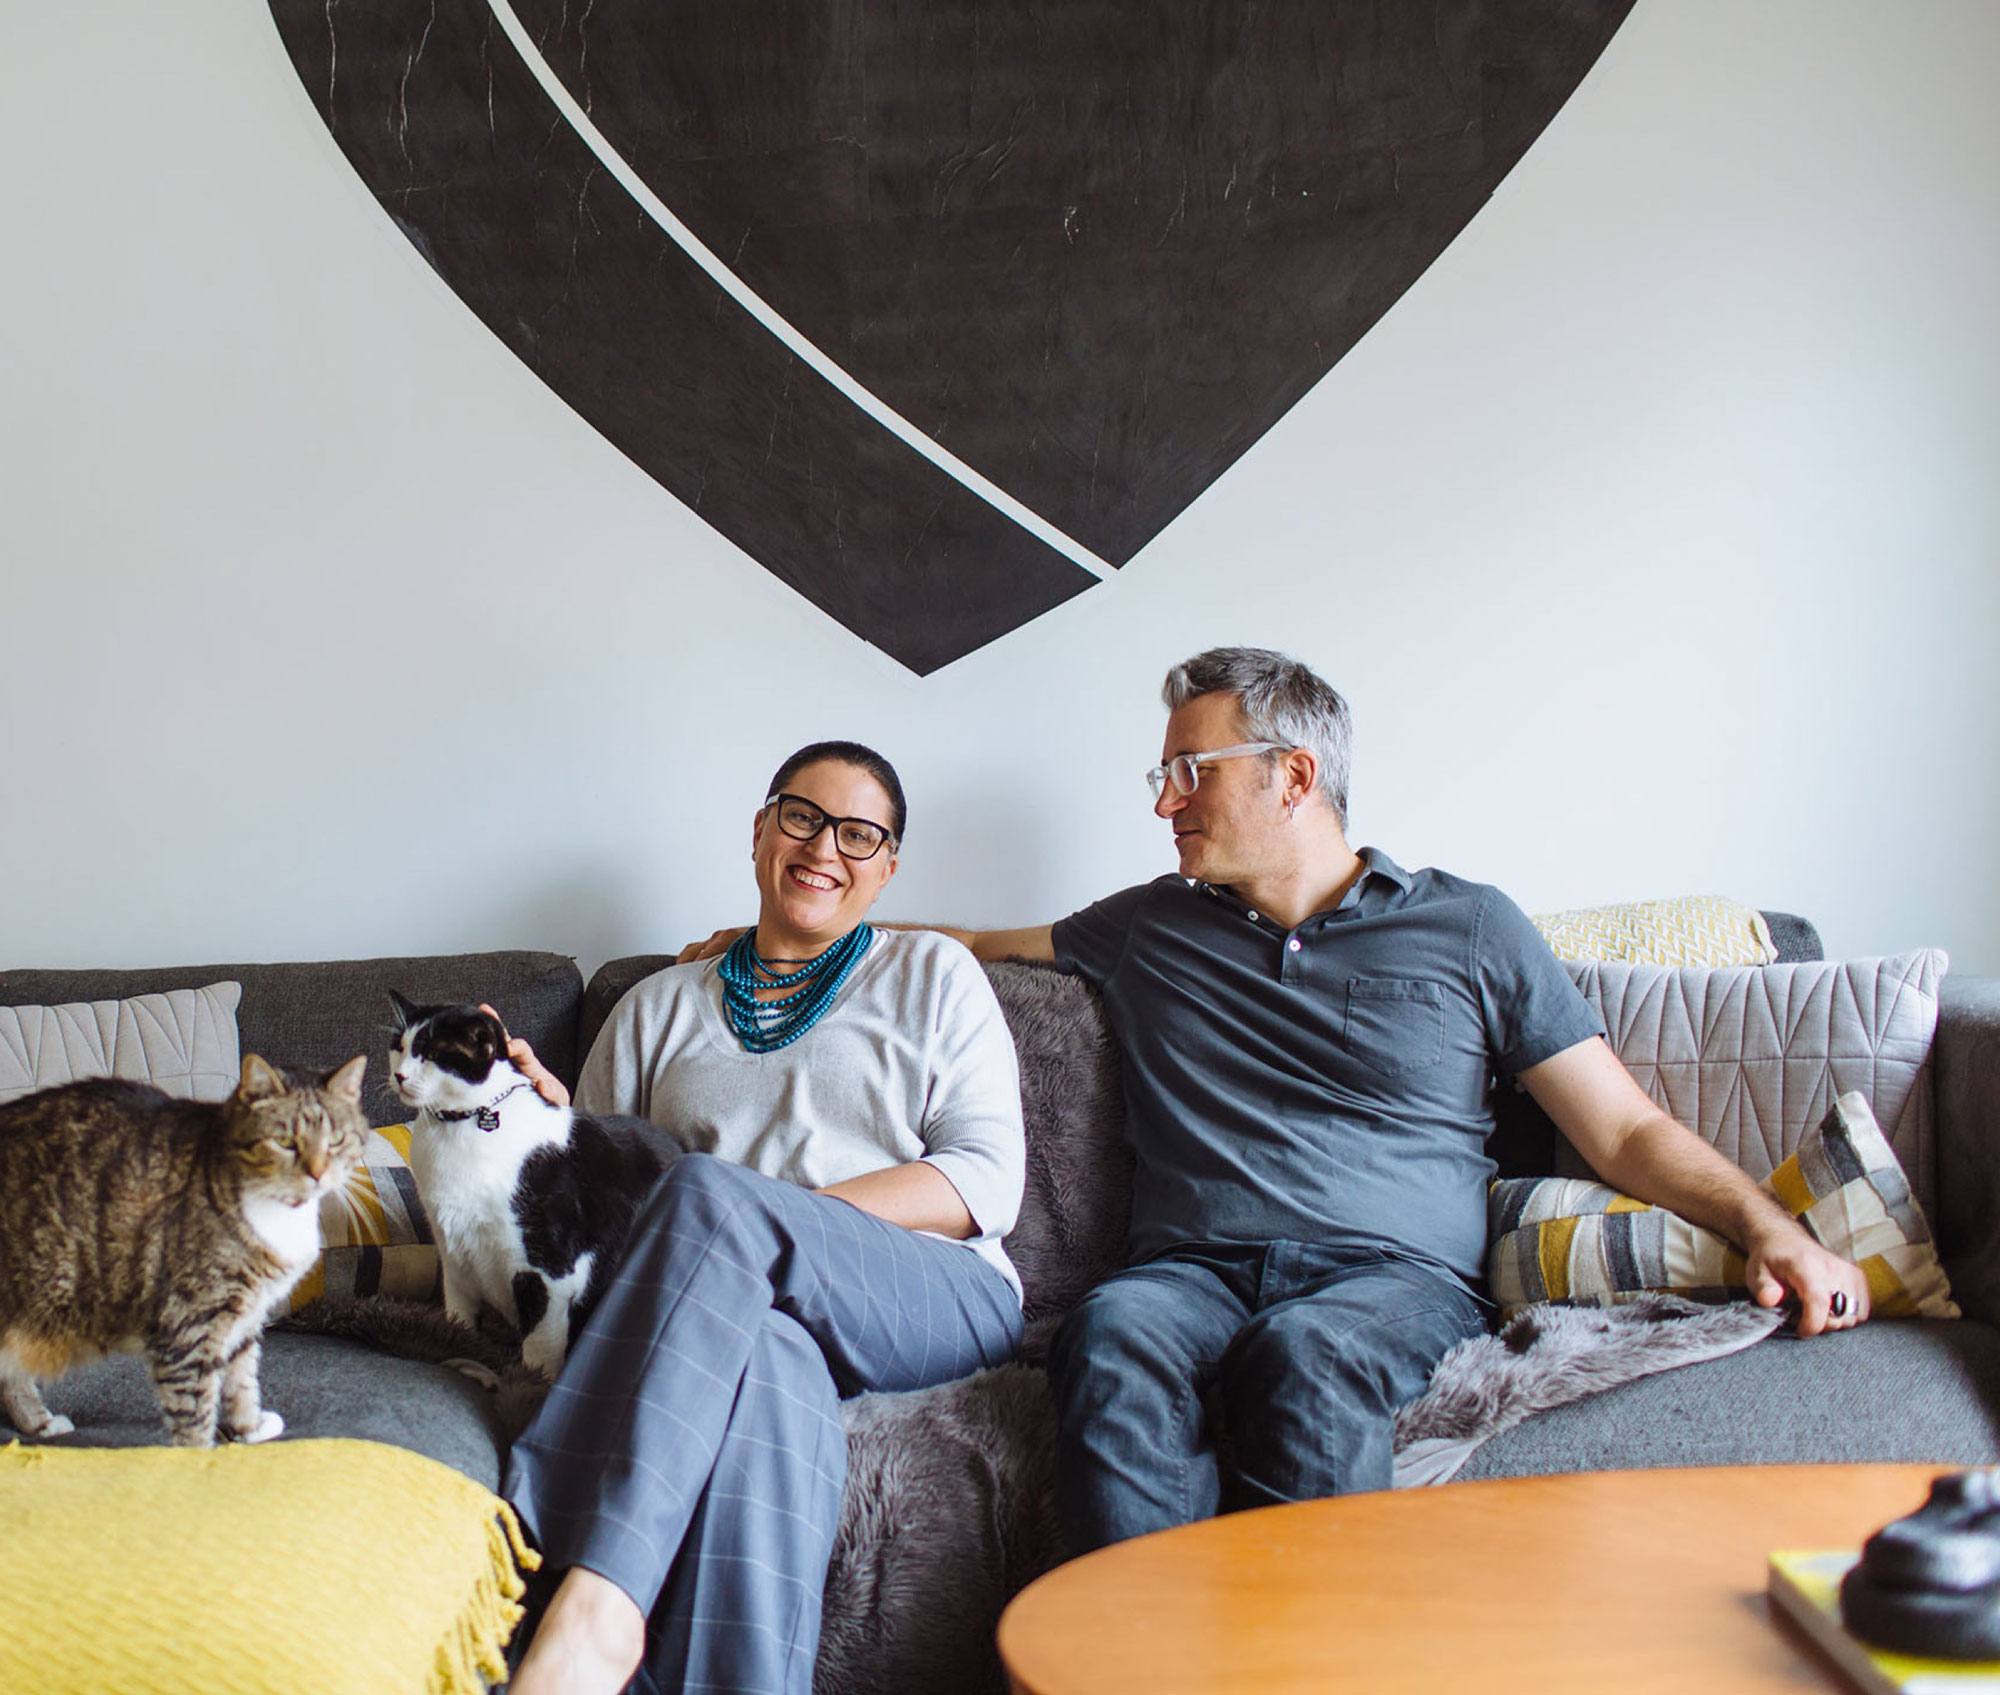 Two people sitting on a couch with a dog and a cat.